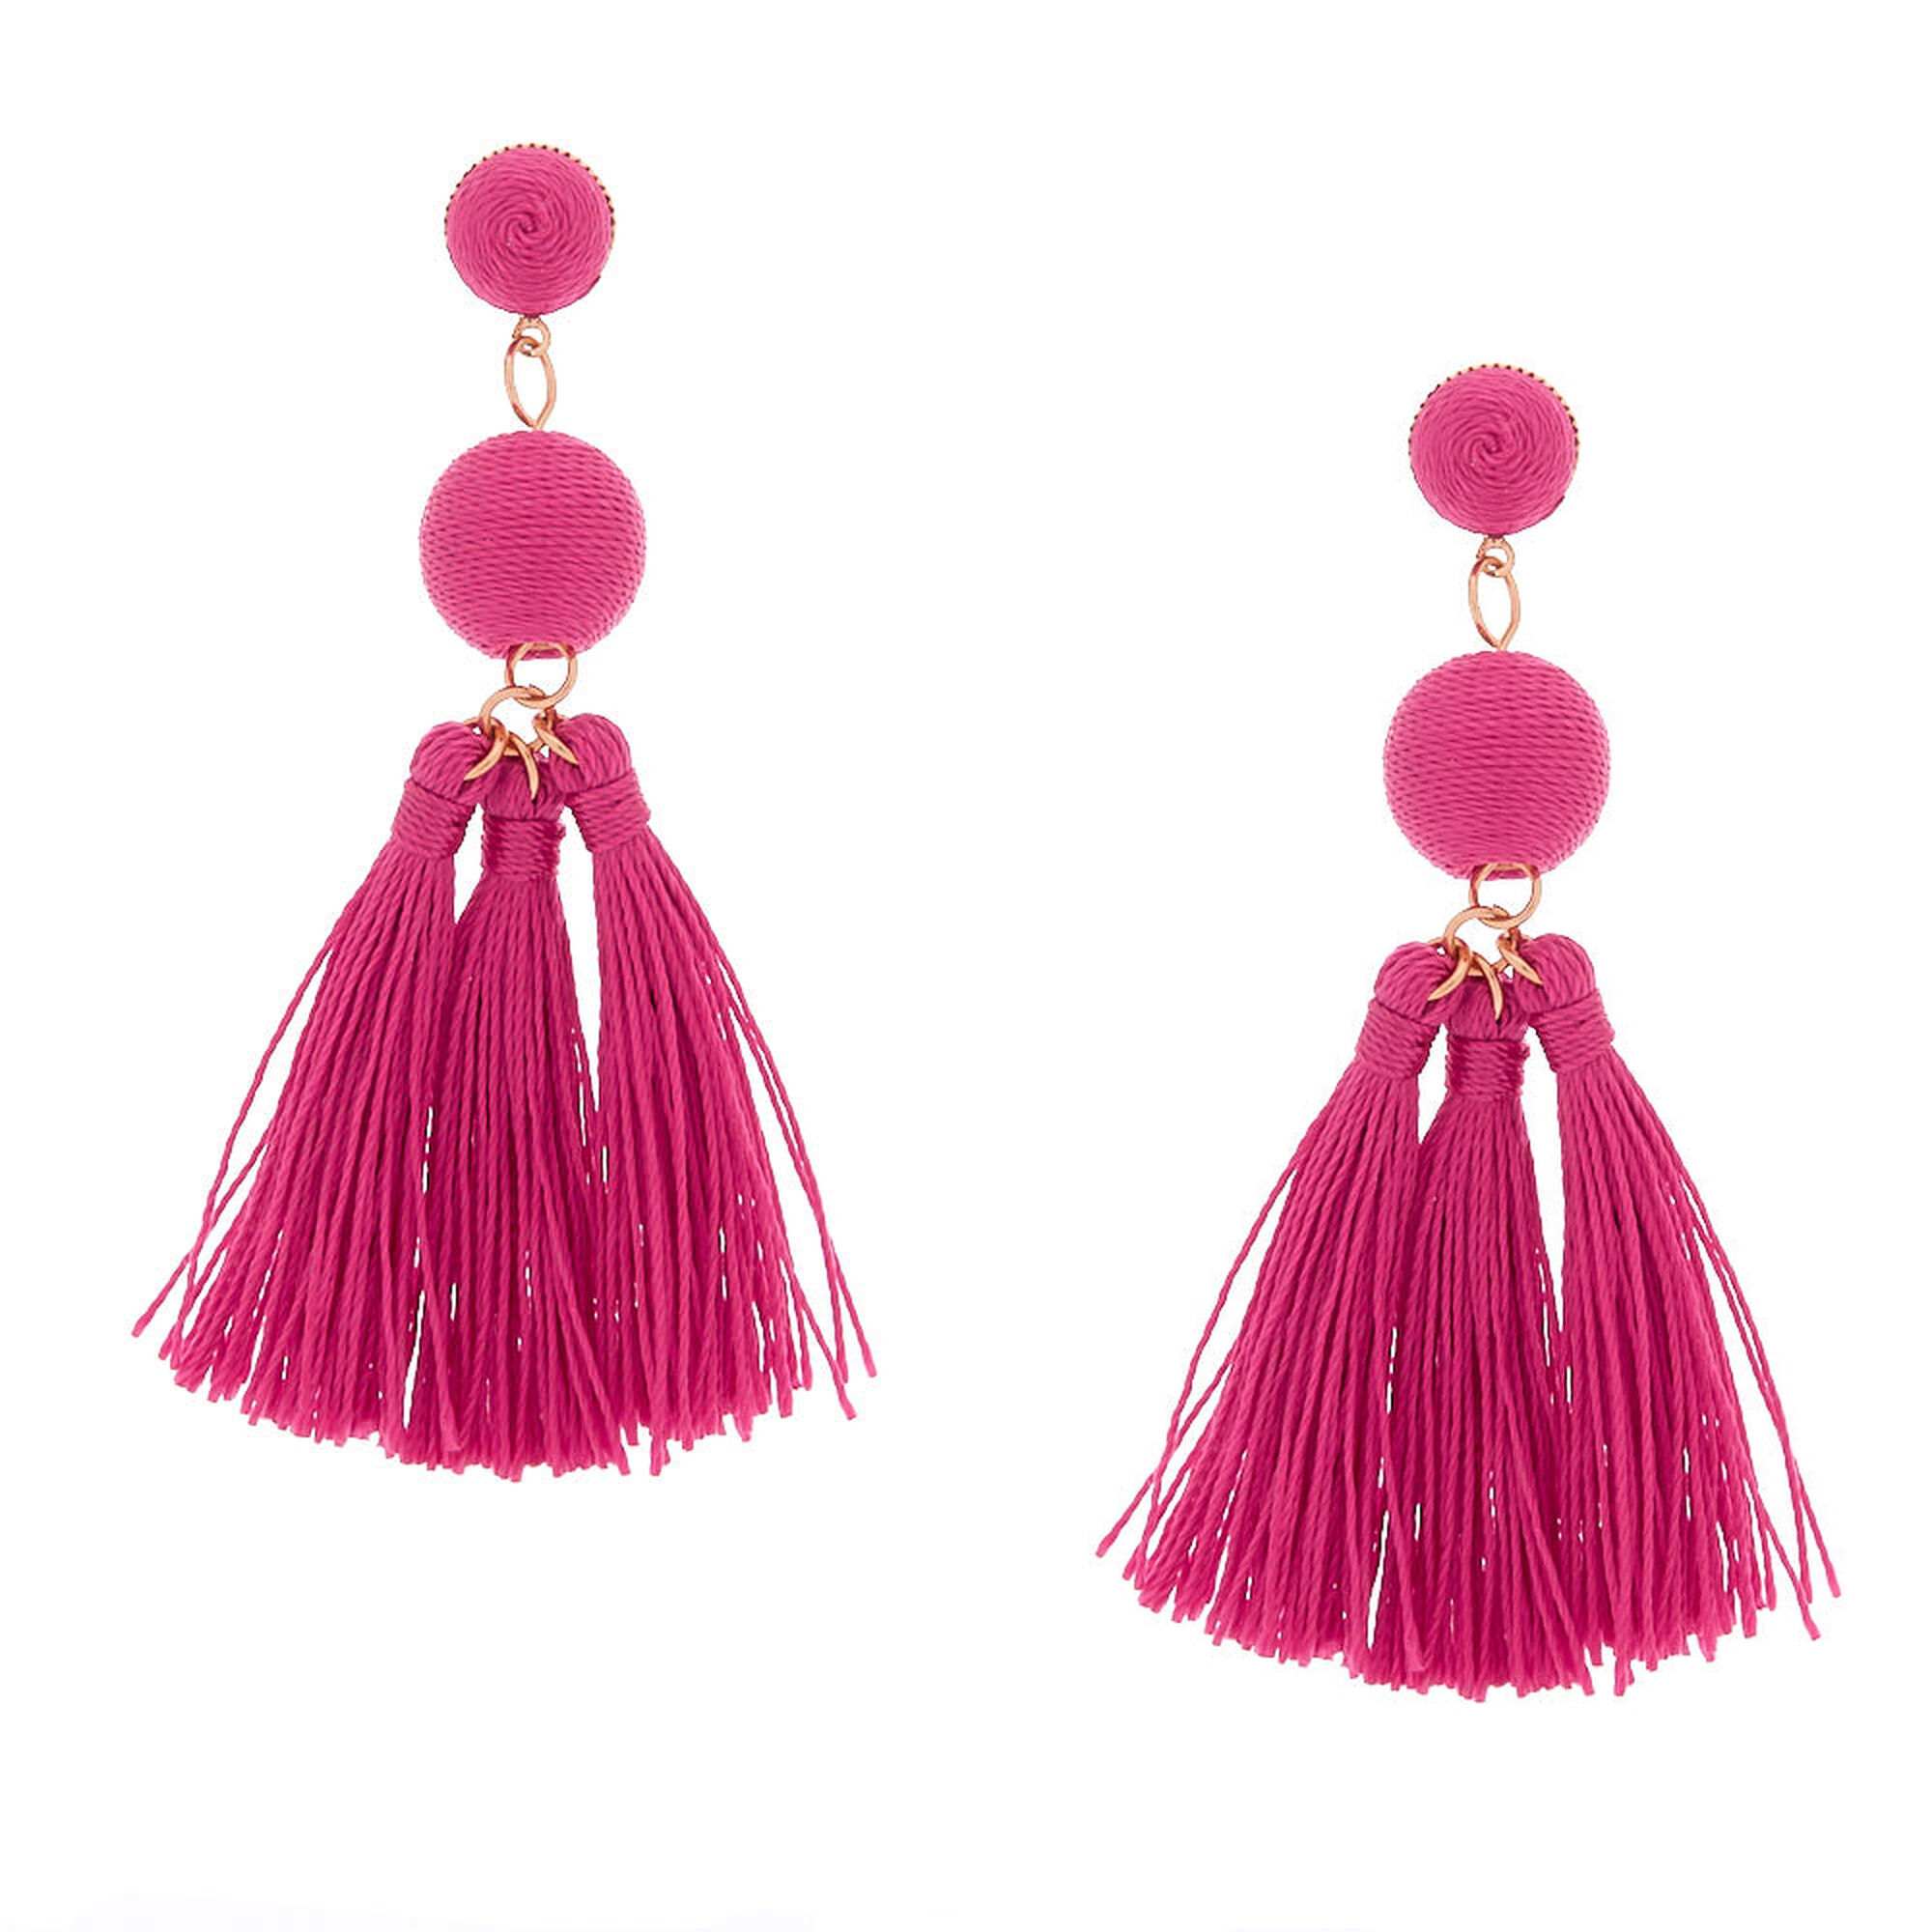 3 Wred Tel Drop Earrings